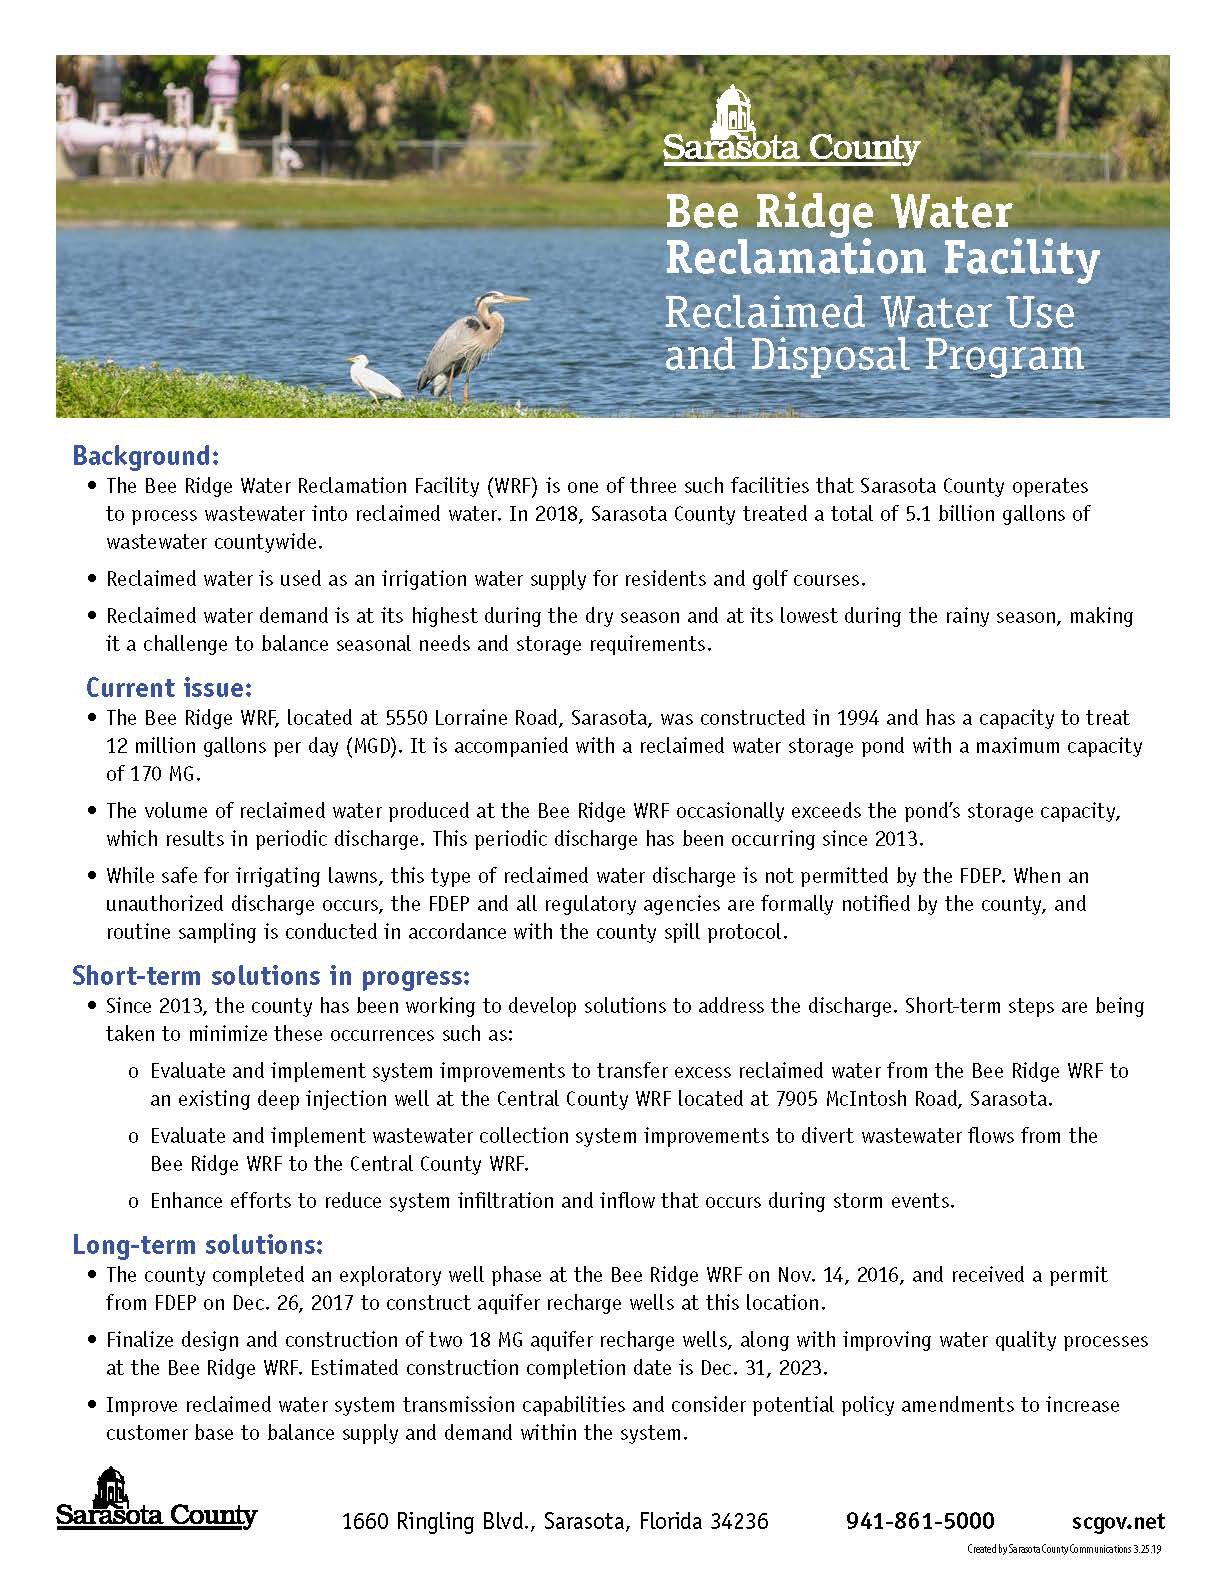 Bee Ridge Water Reclamation Facility Fact Sheet